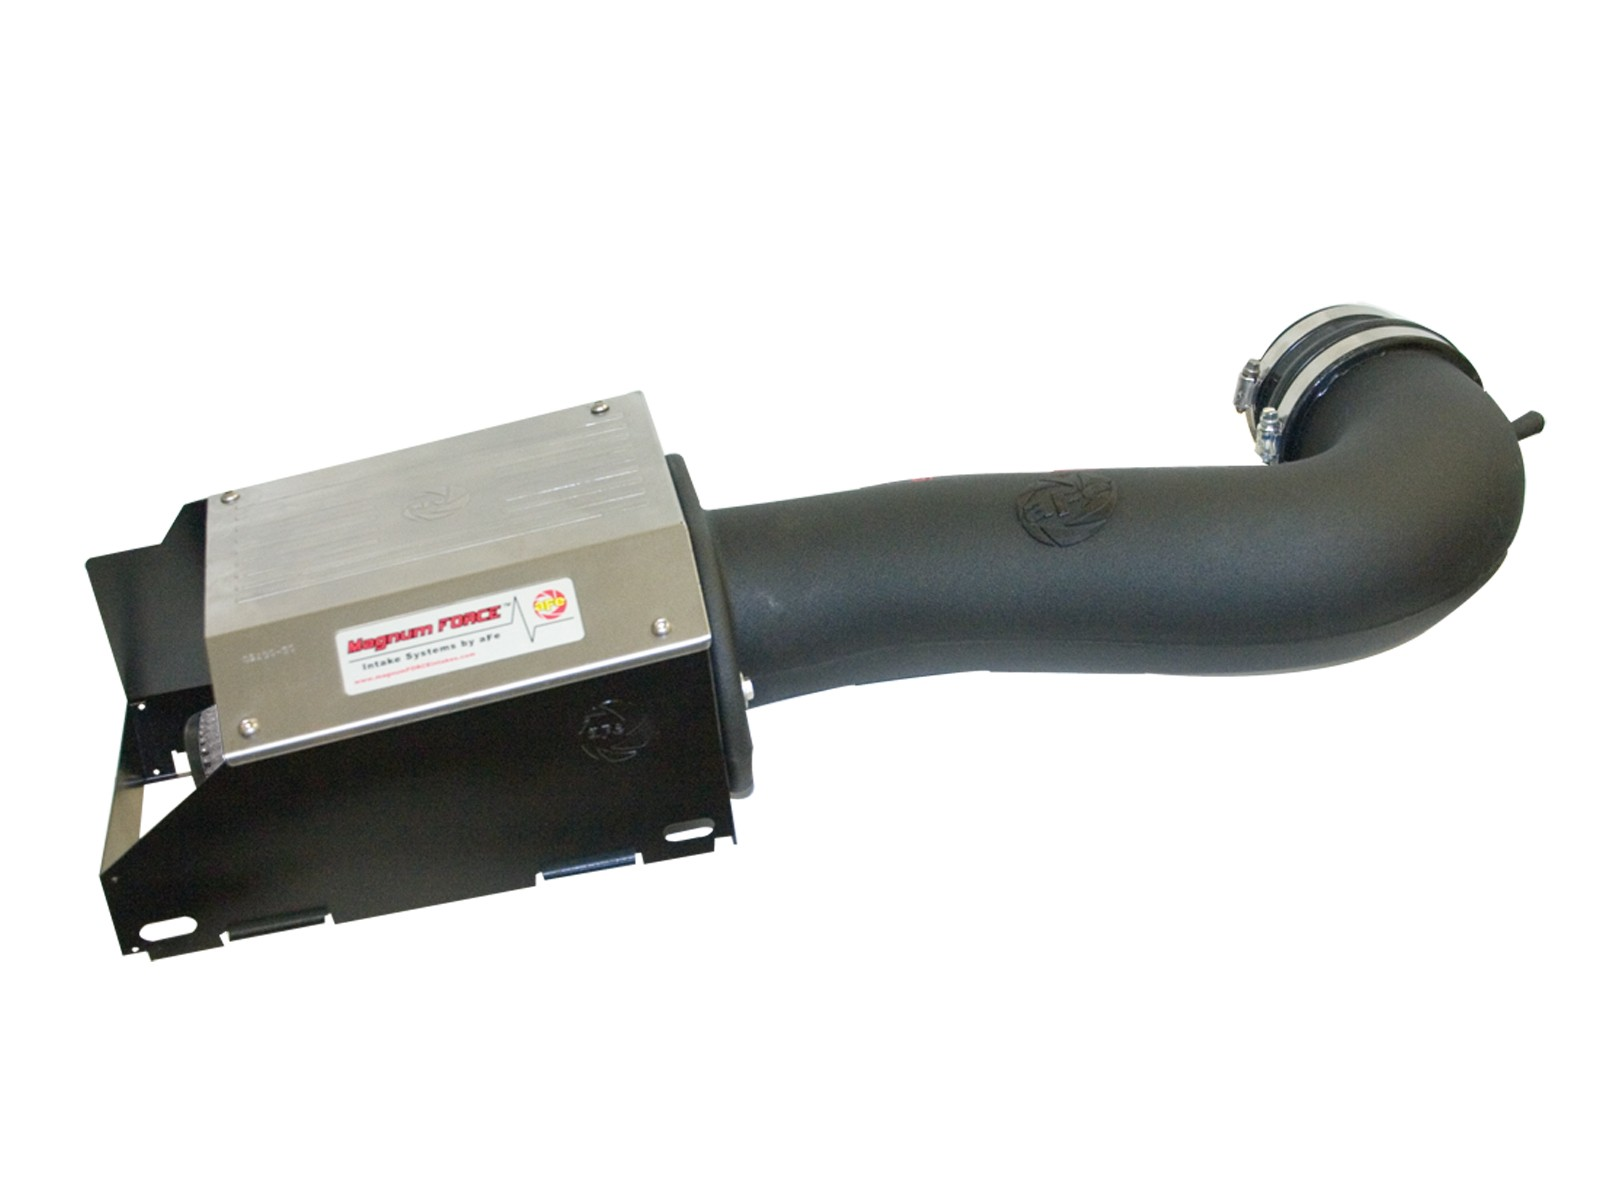 Magnum FORCE Stage-2 Pro DRY S Cold Air Intake System | aFe POWER on gtx engine compartment, semi engine compartment, cuda engine compartment, 1970 dodge challenger engine compartment,